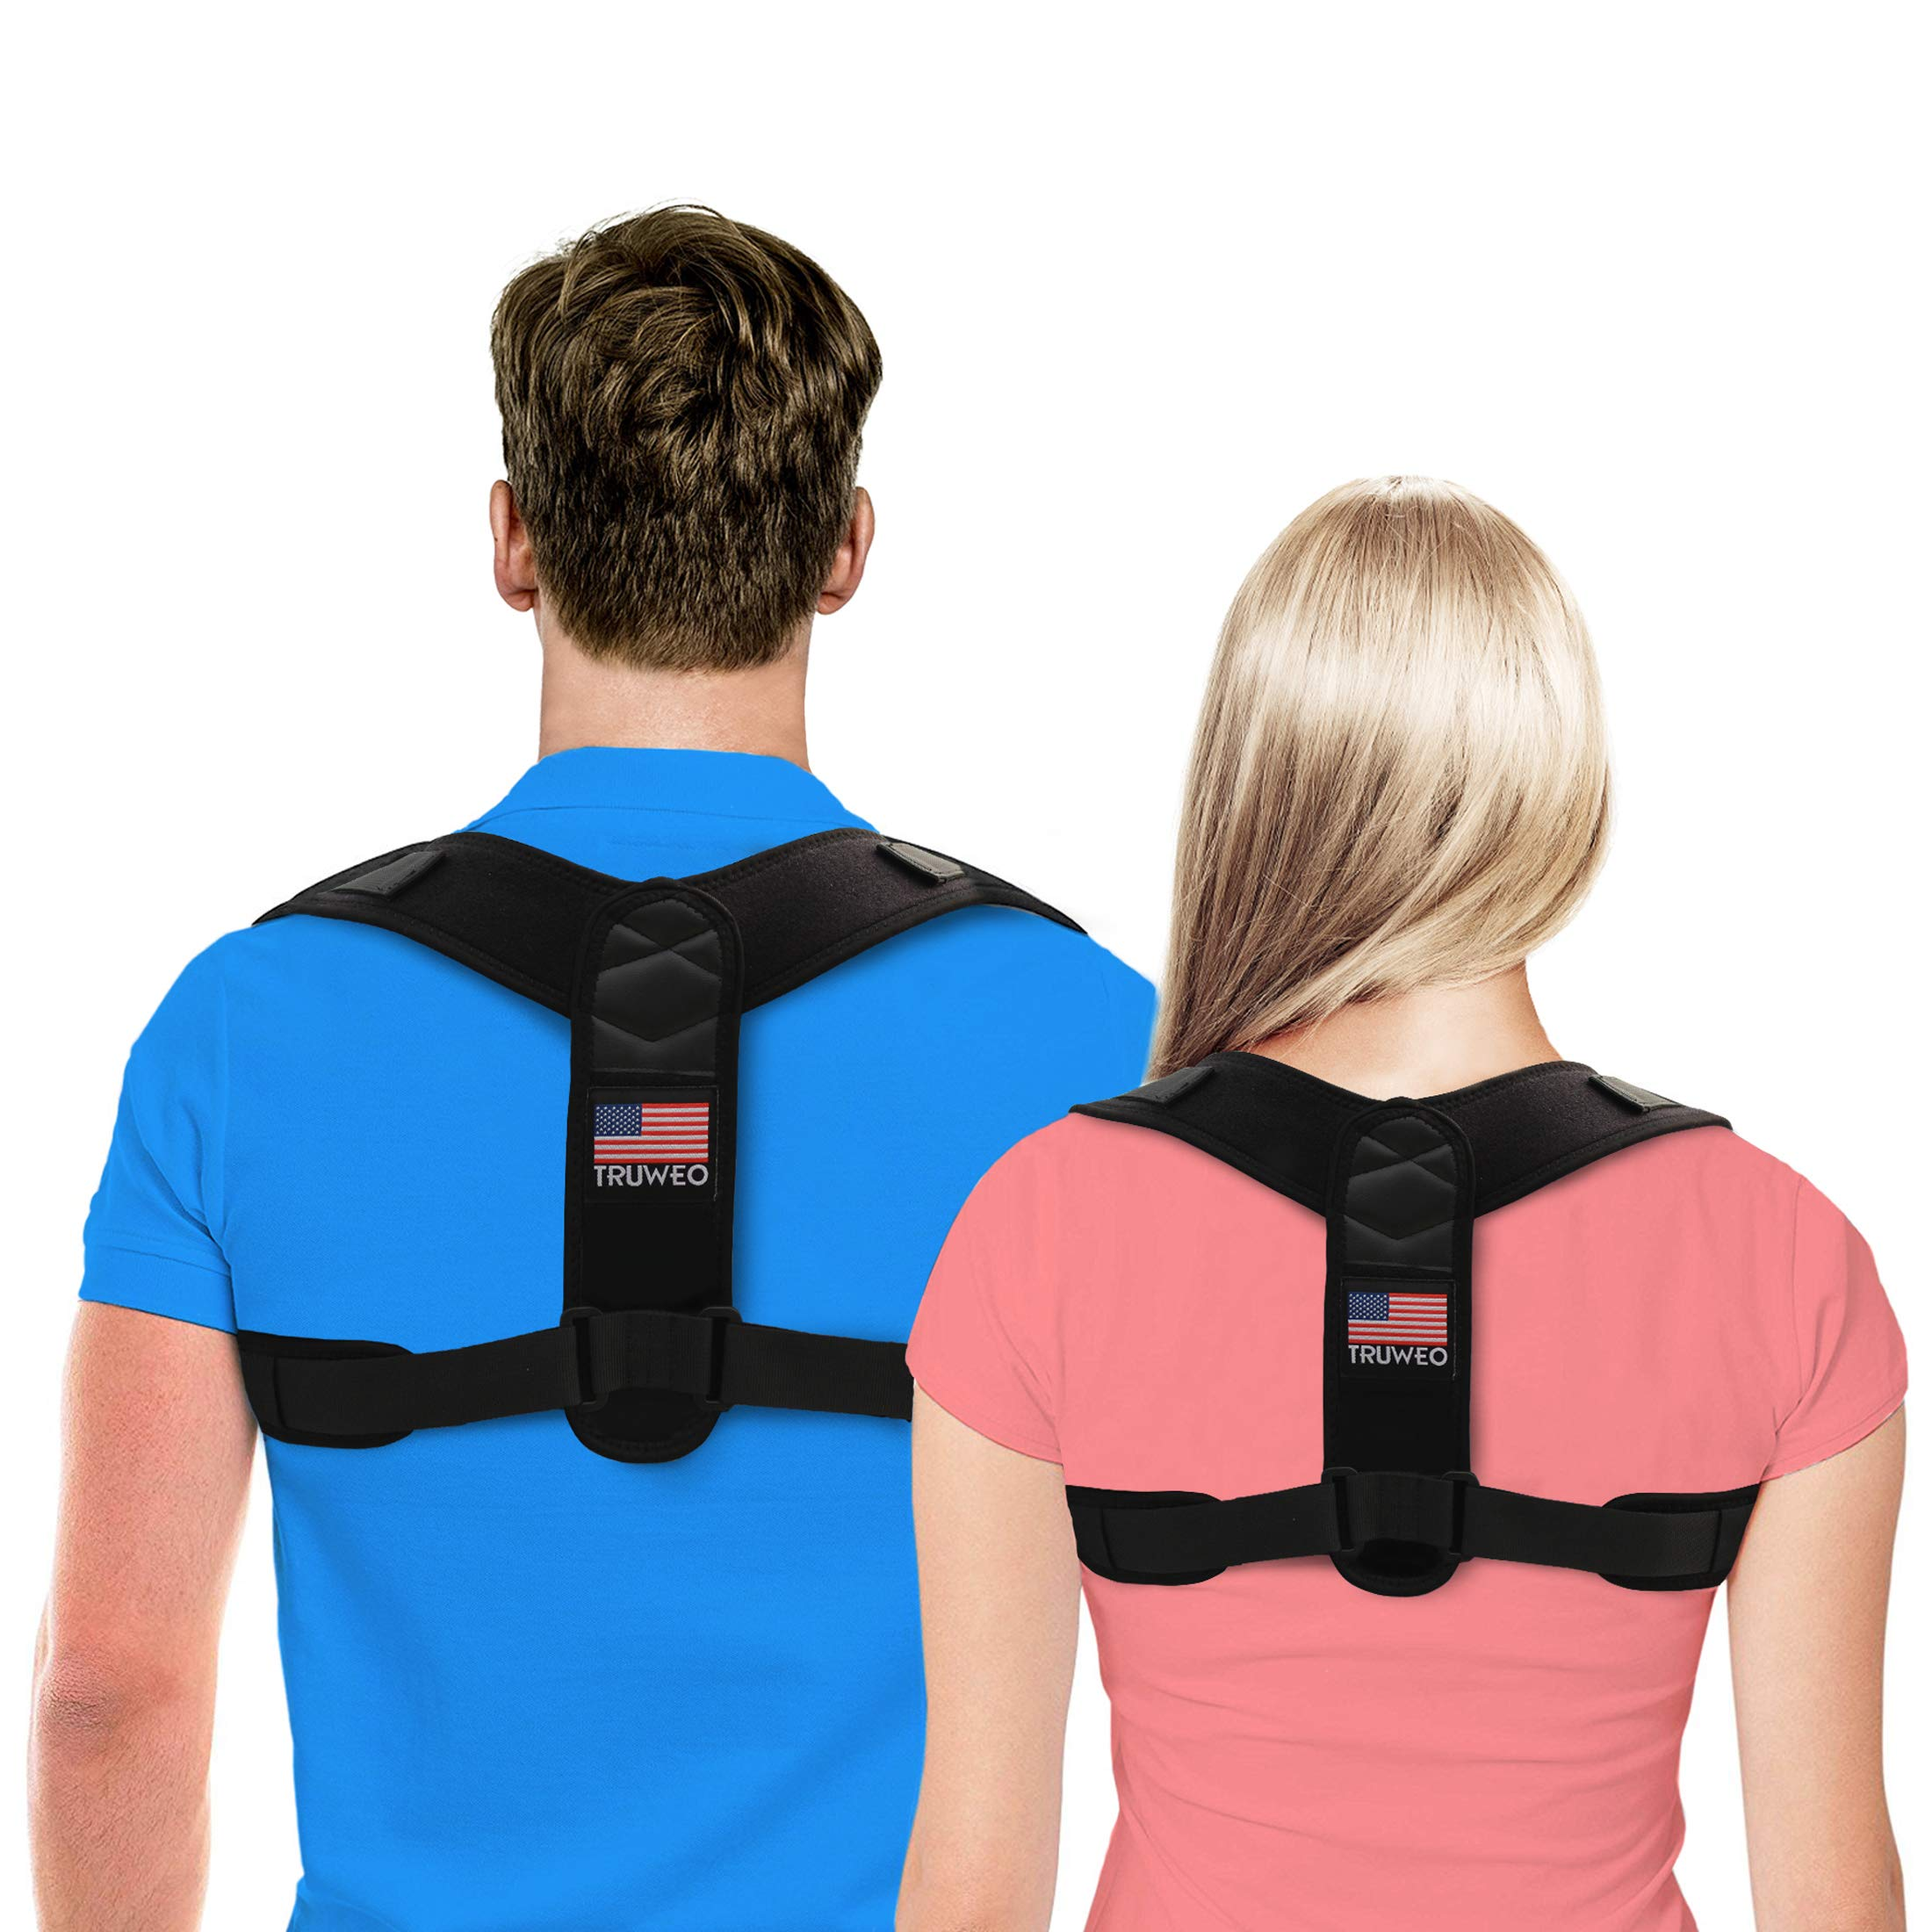 TRUWEO Posture Corrector for Men and Women - USA Designed Upper Back Brace  for Clavicle Support bc207ccd1